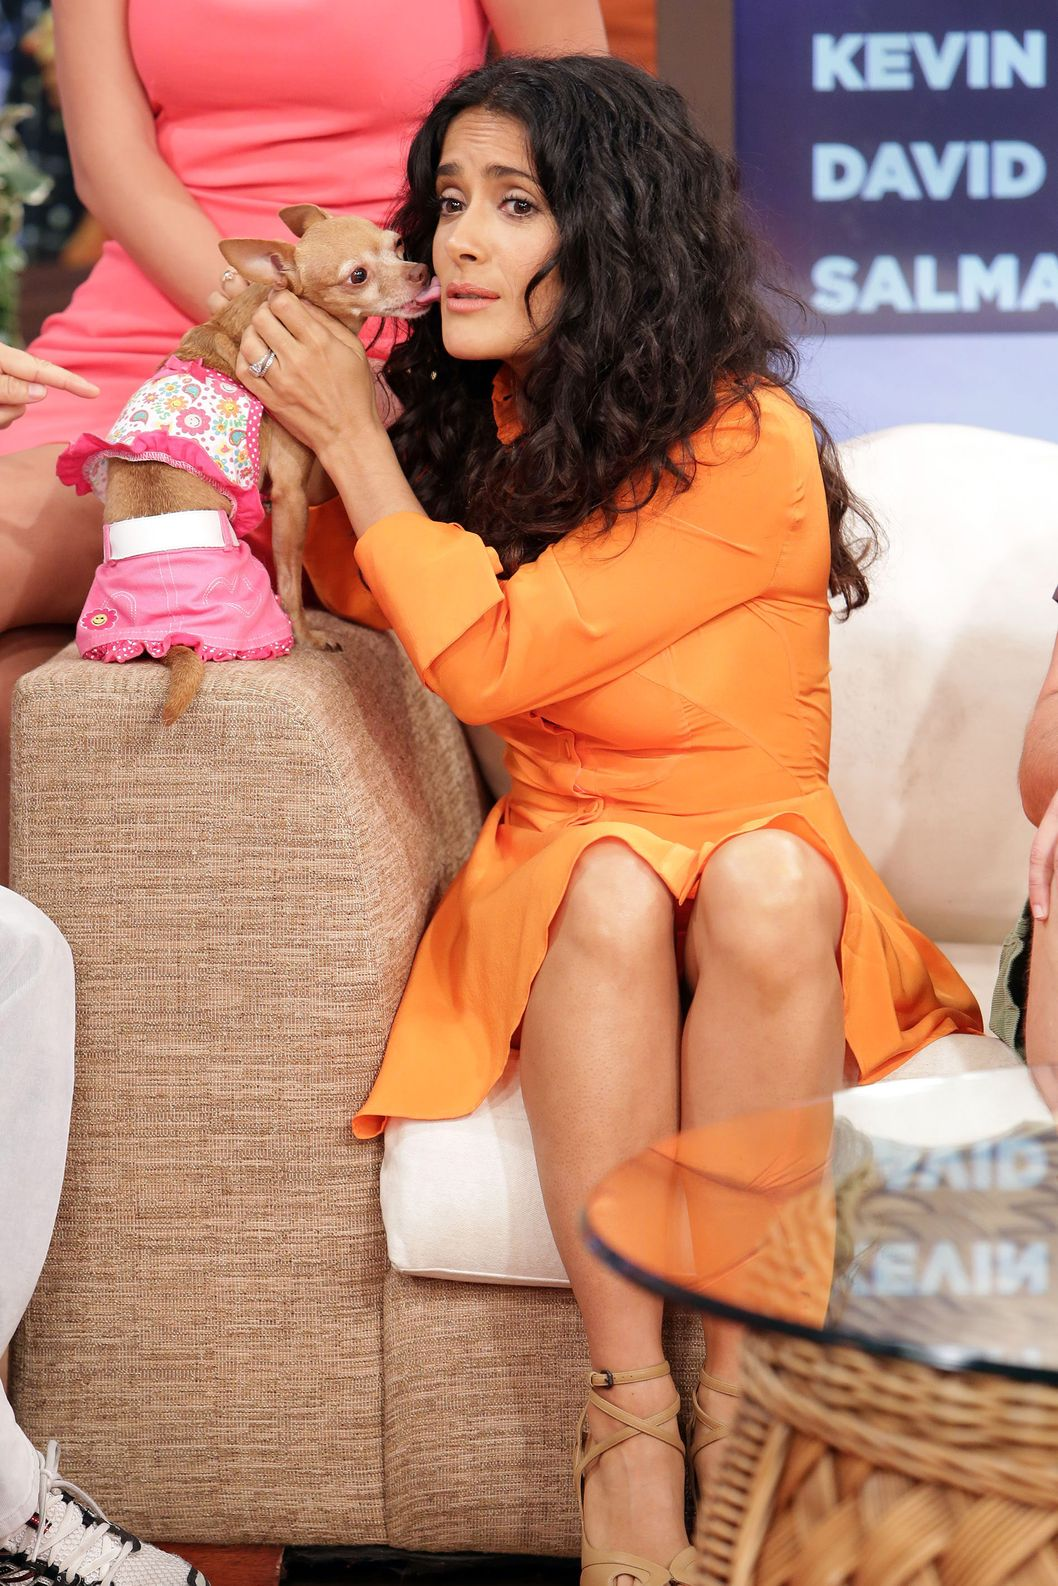 "MIAMI, FL - JULY 08: Salma Hayek of ""Grown Ups 2"" cast appears on Univision's ""Despierta America"" to promote the movie at Univision Headquarters on July 8, 2013 in Miami, Florida. (Photo by Alexander Tamargo/Getty Images)"